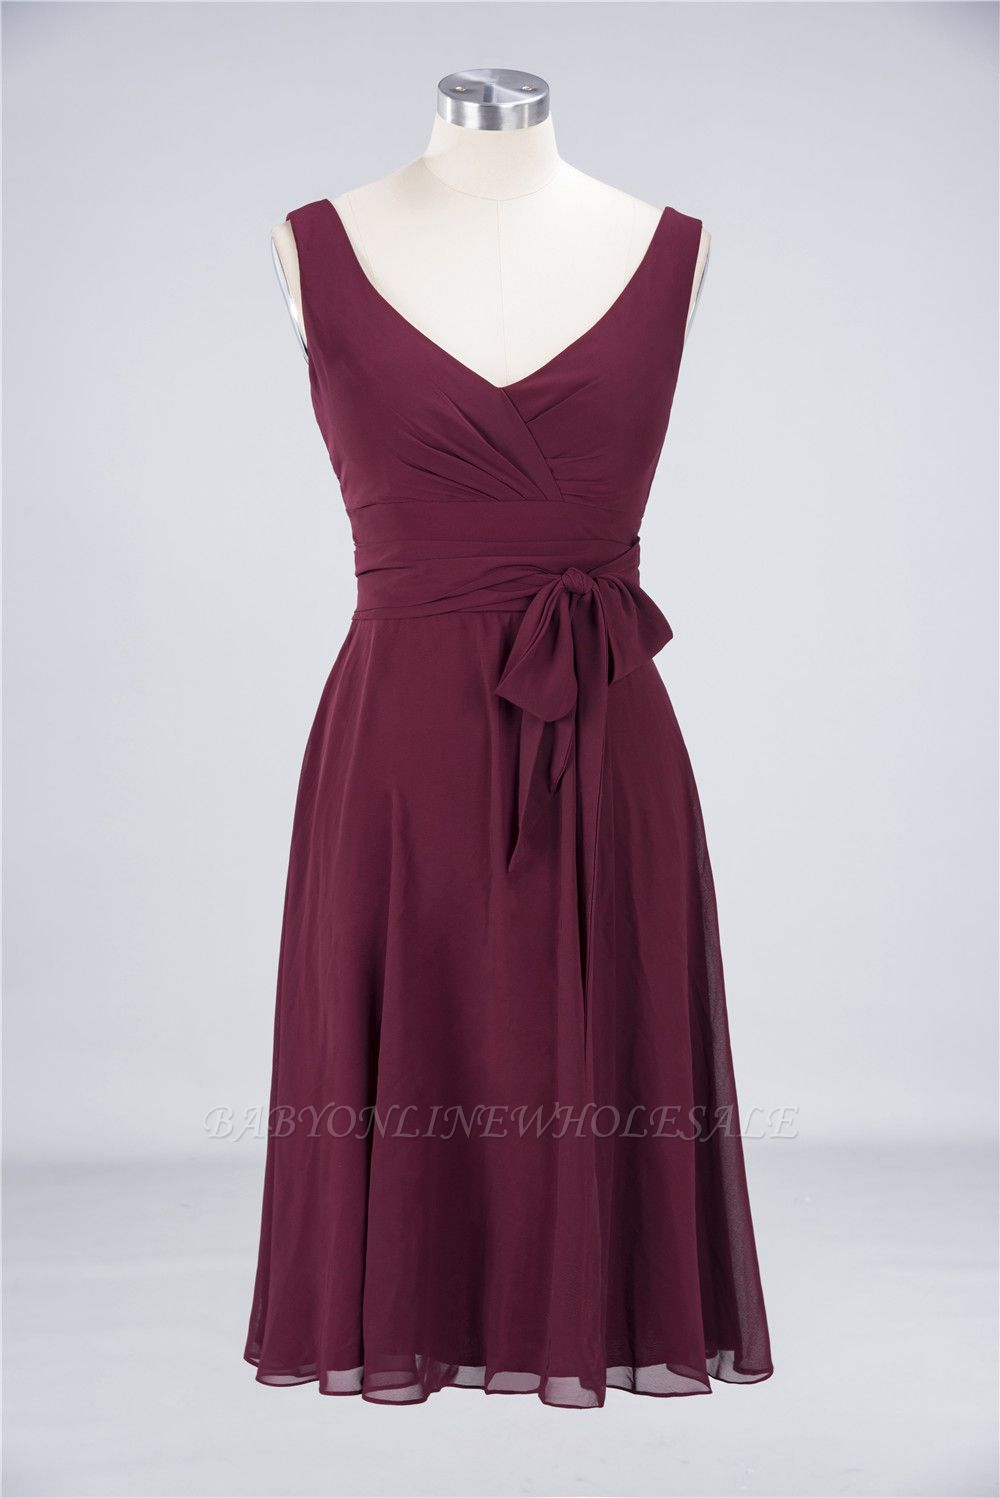 Chiffon A-Line Straps V-Neck Sleeveless Ruffles Short Bridesmaid Dress with Bow Sash